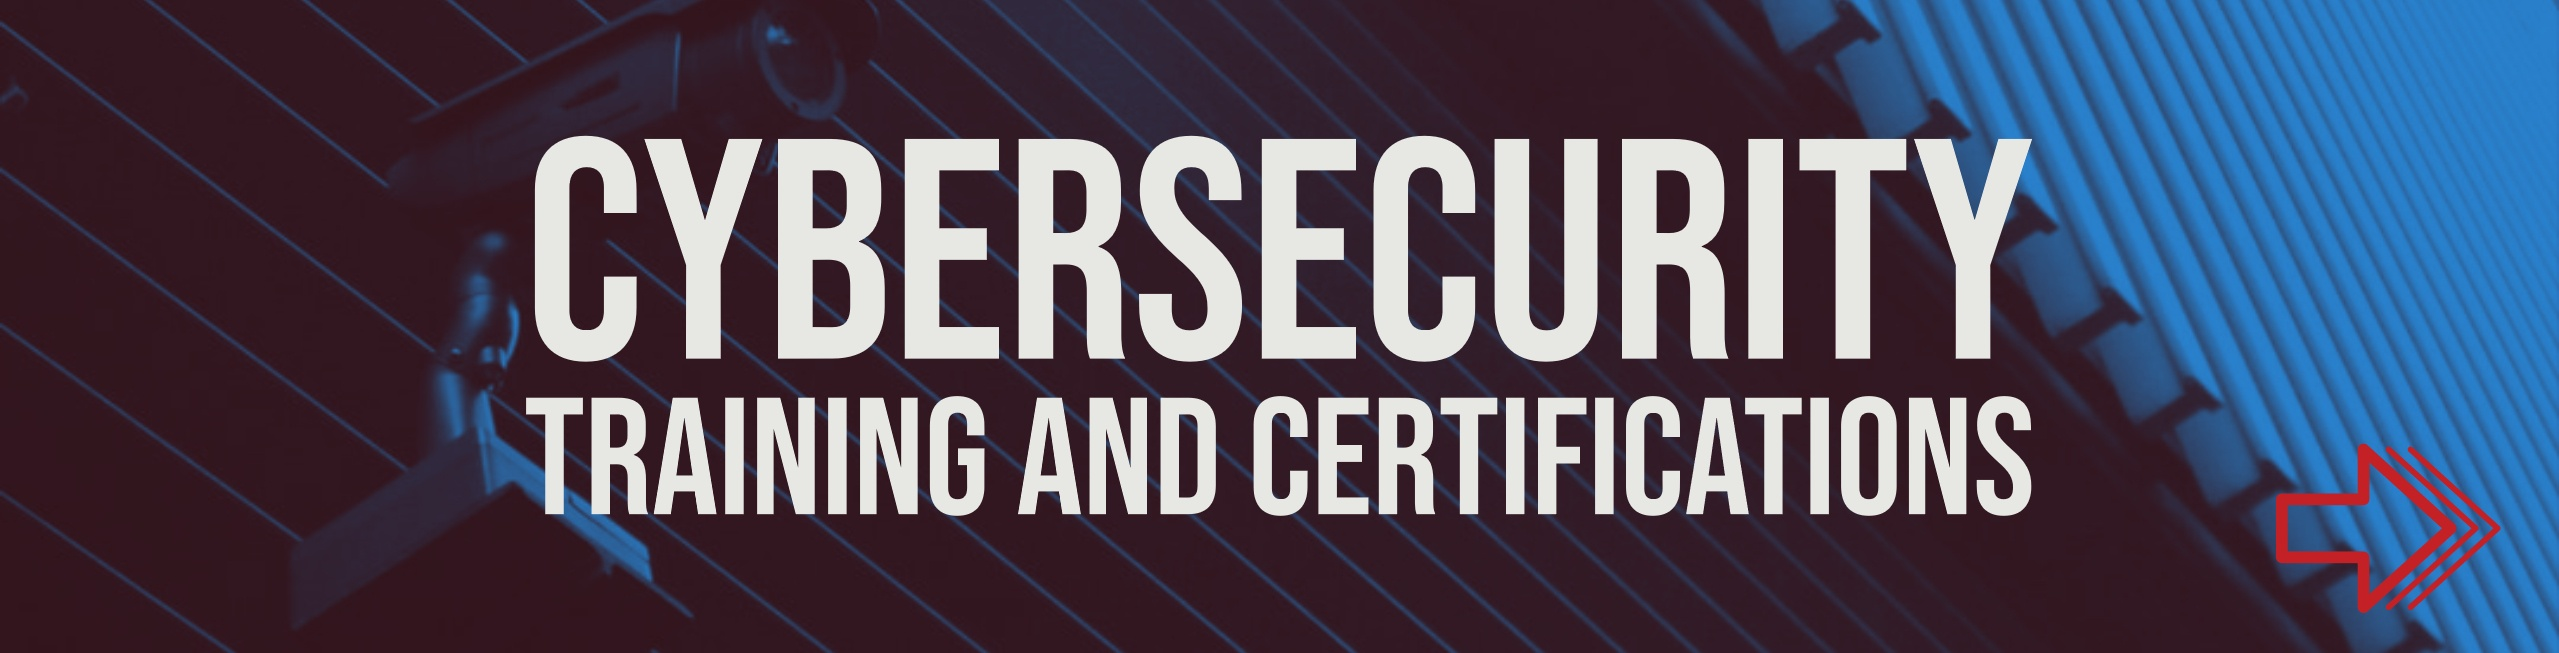 Cybersecurity Training and Certification at New Horizons